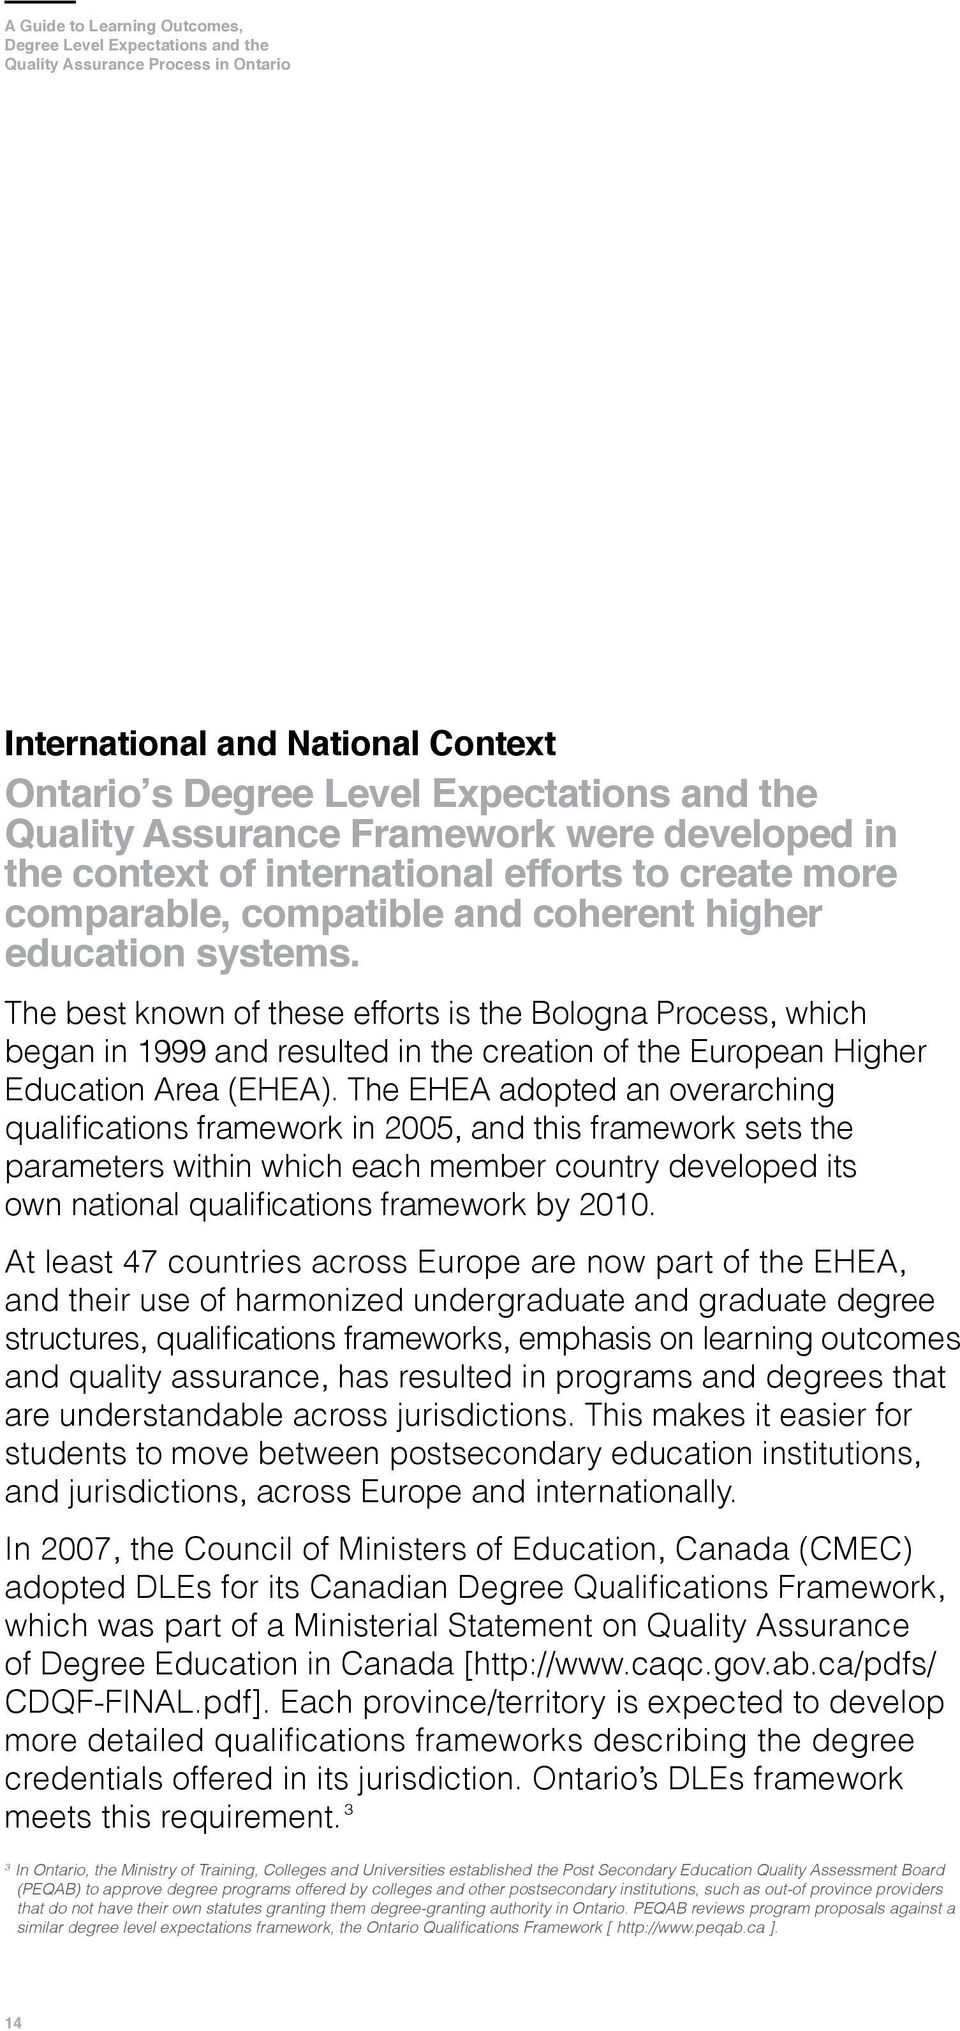 The best known of these efforts is the Bologna Process, which began in 1999 and resulted in the creation of the European Higher Education Area (EHEA).